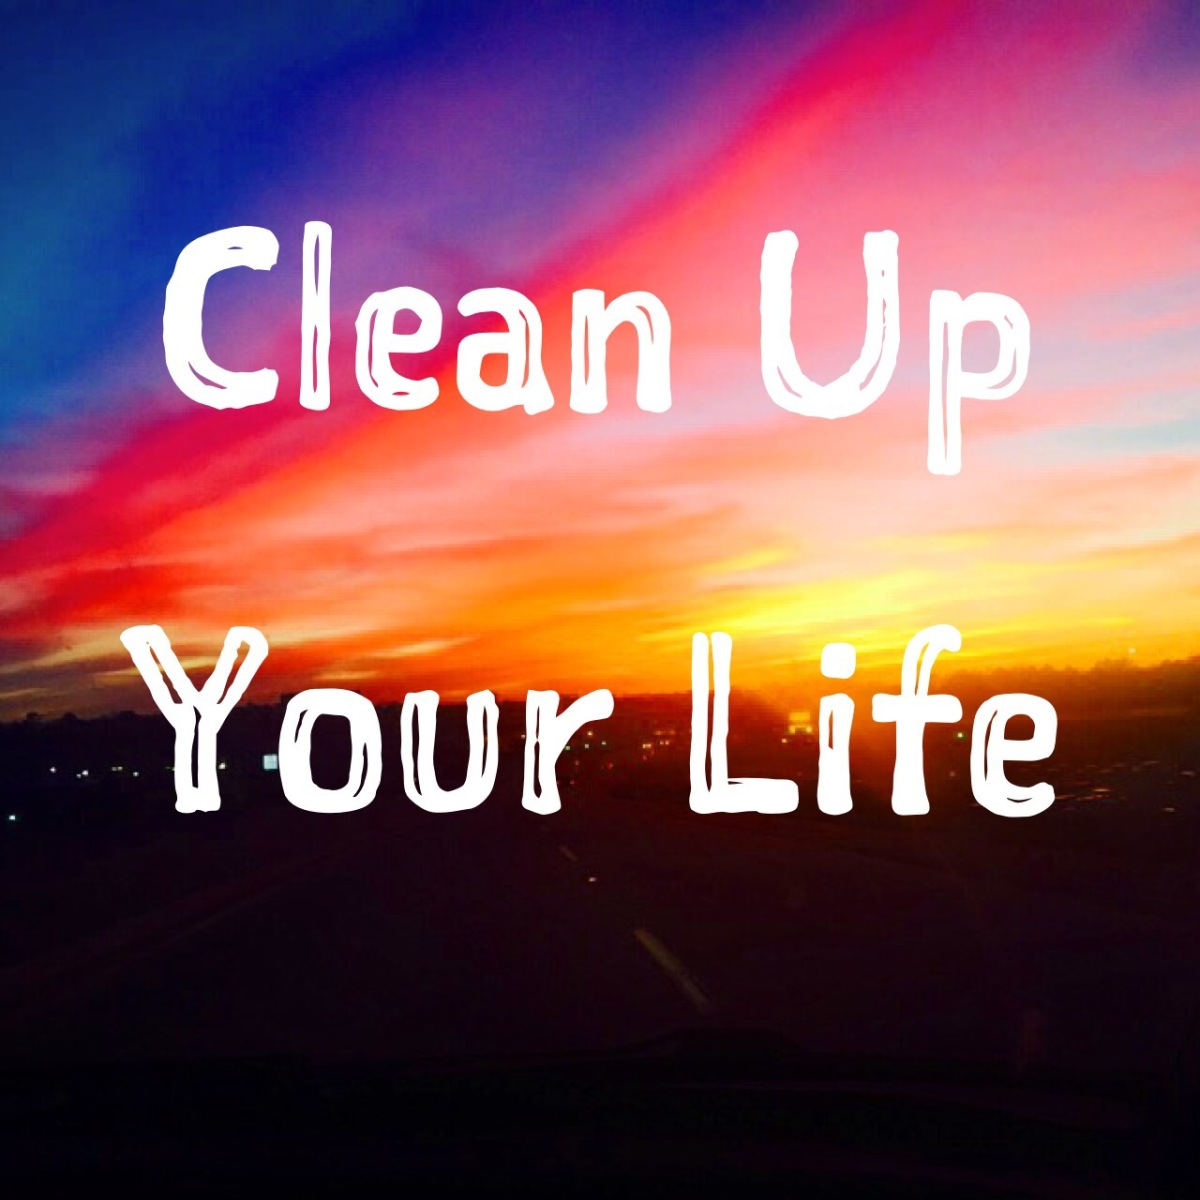 FRESH START FRIDAYS: Clean Up Your Life